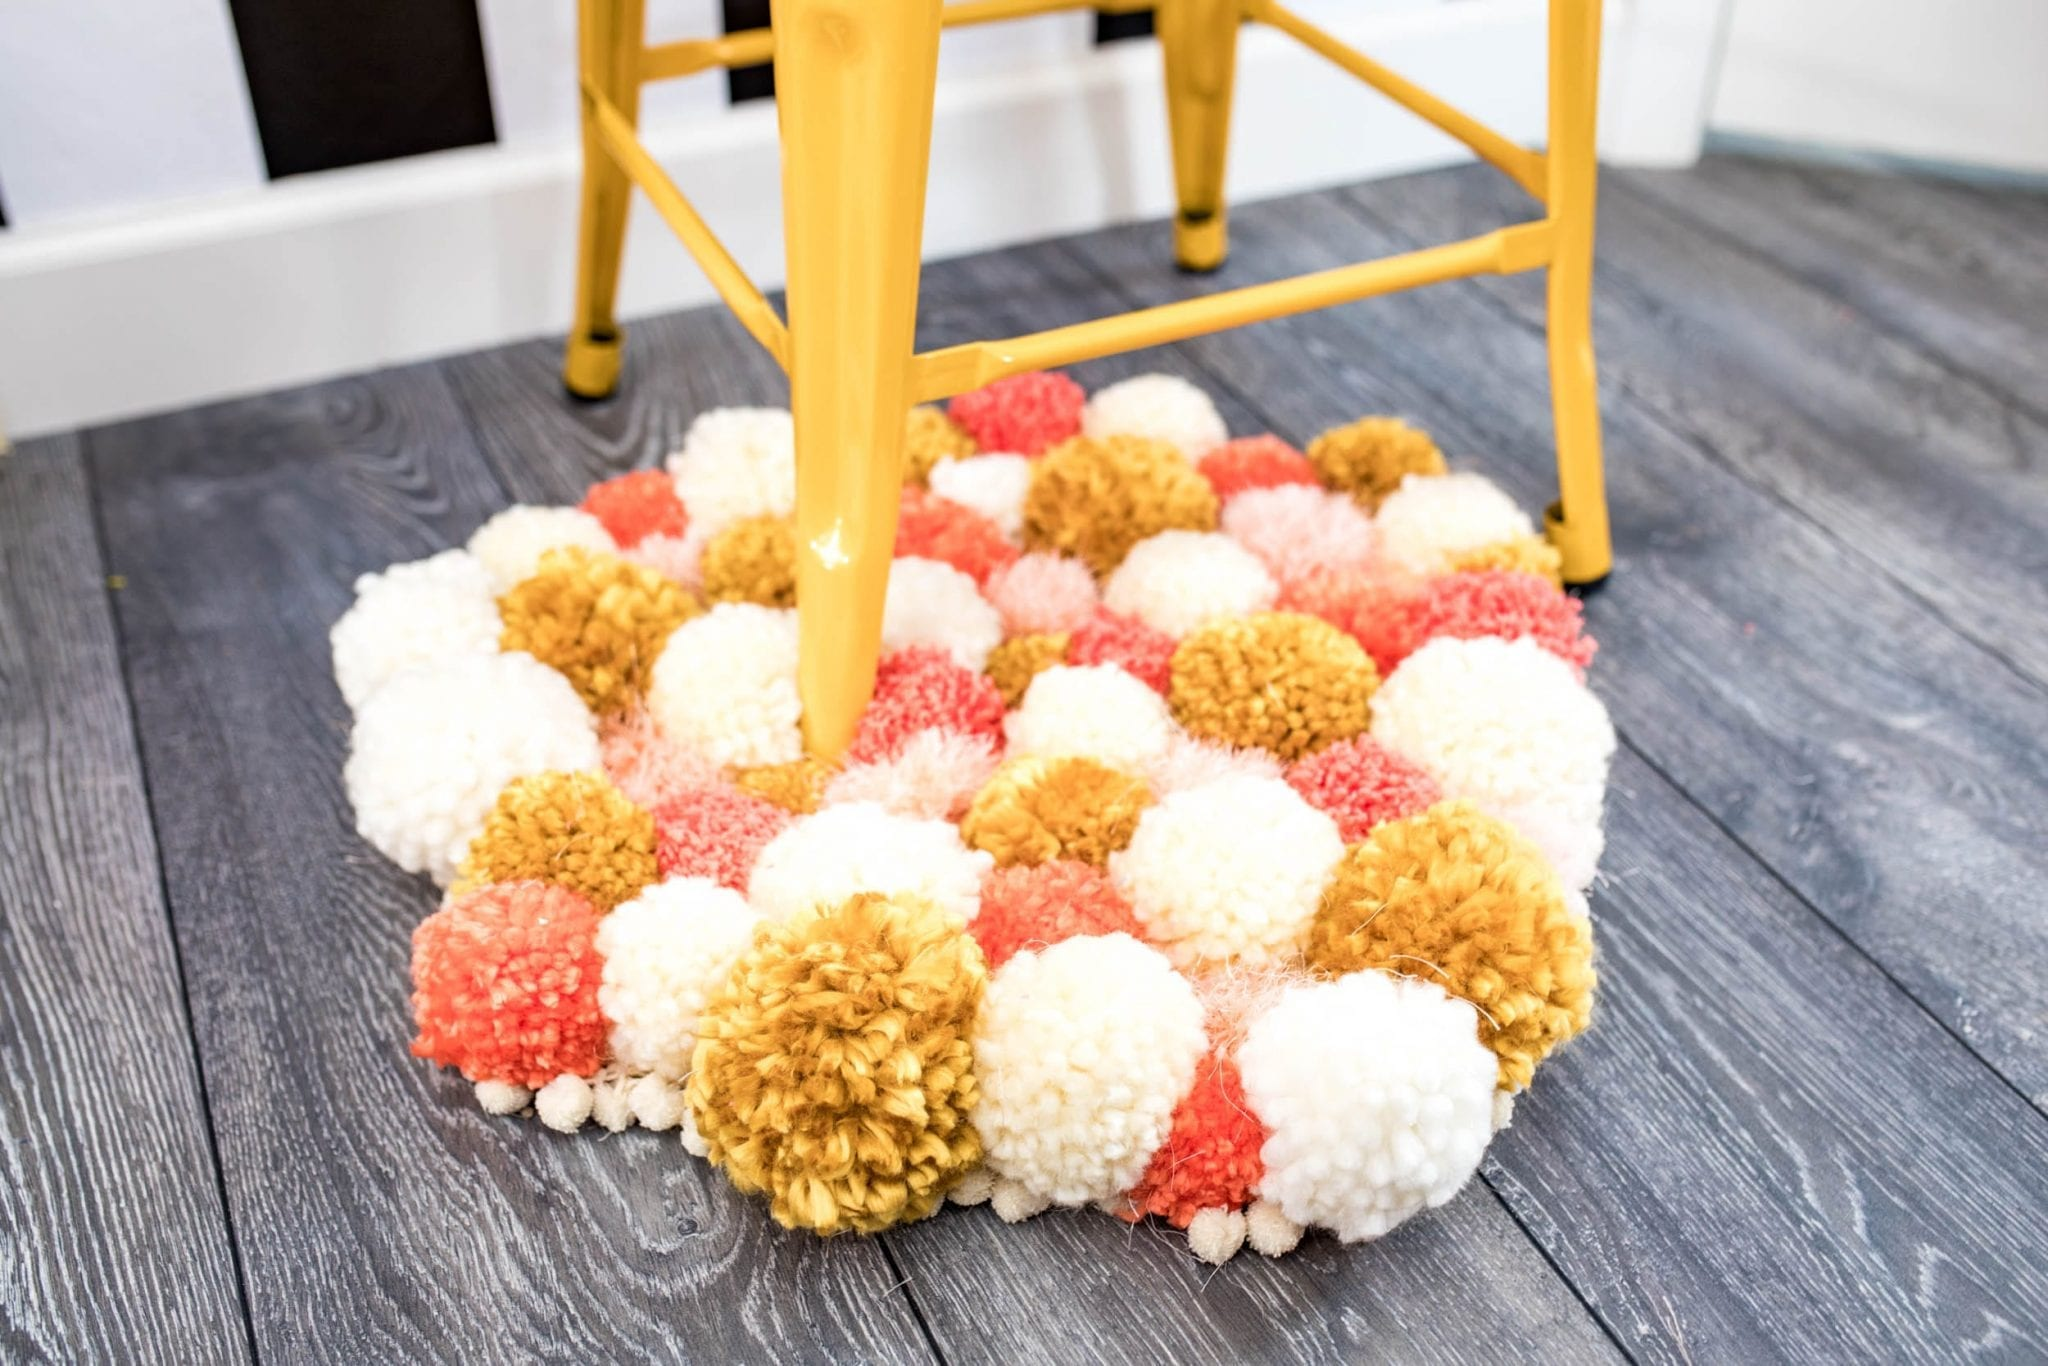 SO CUTE & SOFT! | pom pom rug tutorial video | pom pom rug tutorial | pom pom rug DIY | DIY Ideas | DIY Projects | pom pom rug diy ideas | Easy DIY Projects Yarn | Yarn crafts | Never Skip Brunch by Cara Newhart Denver Blogger | #DIY #Crafts #decor #yarn